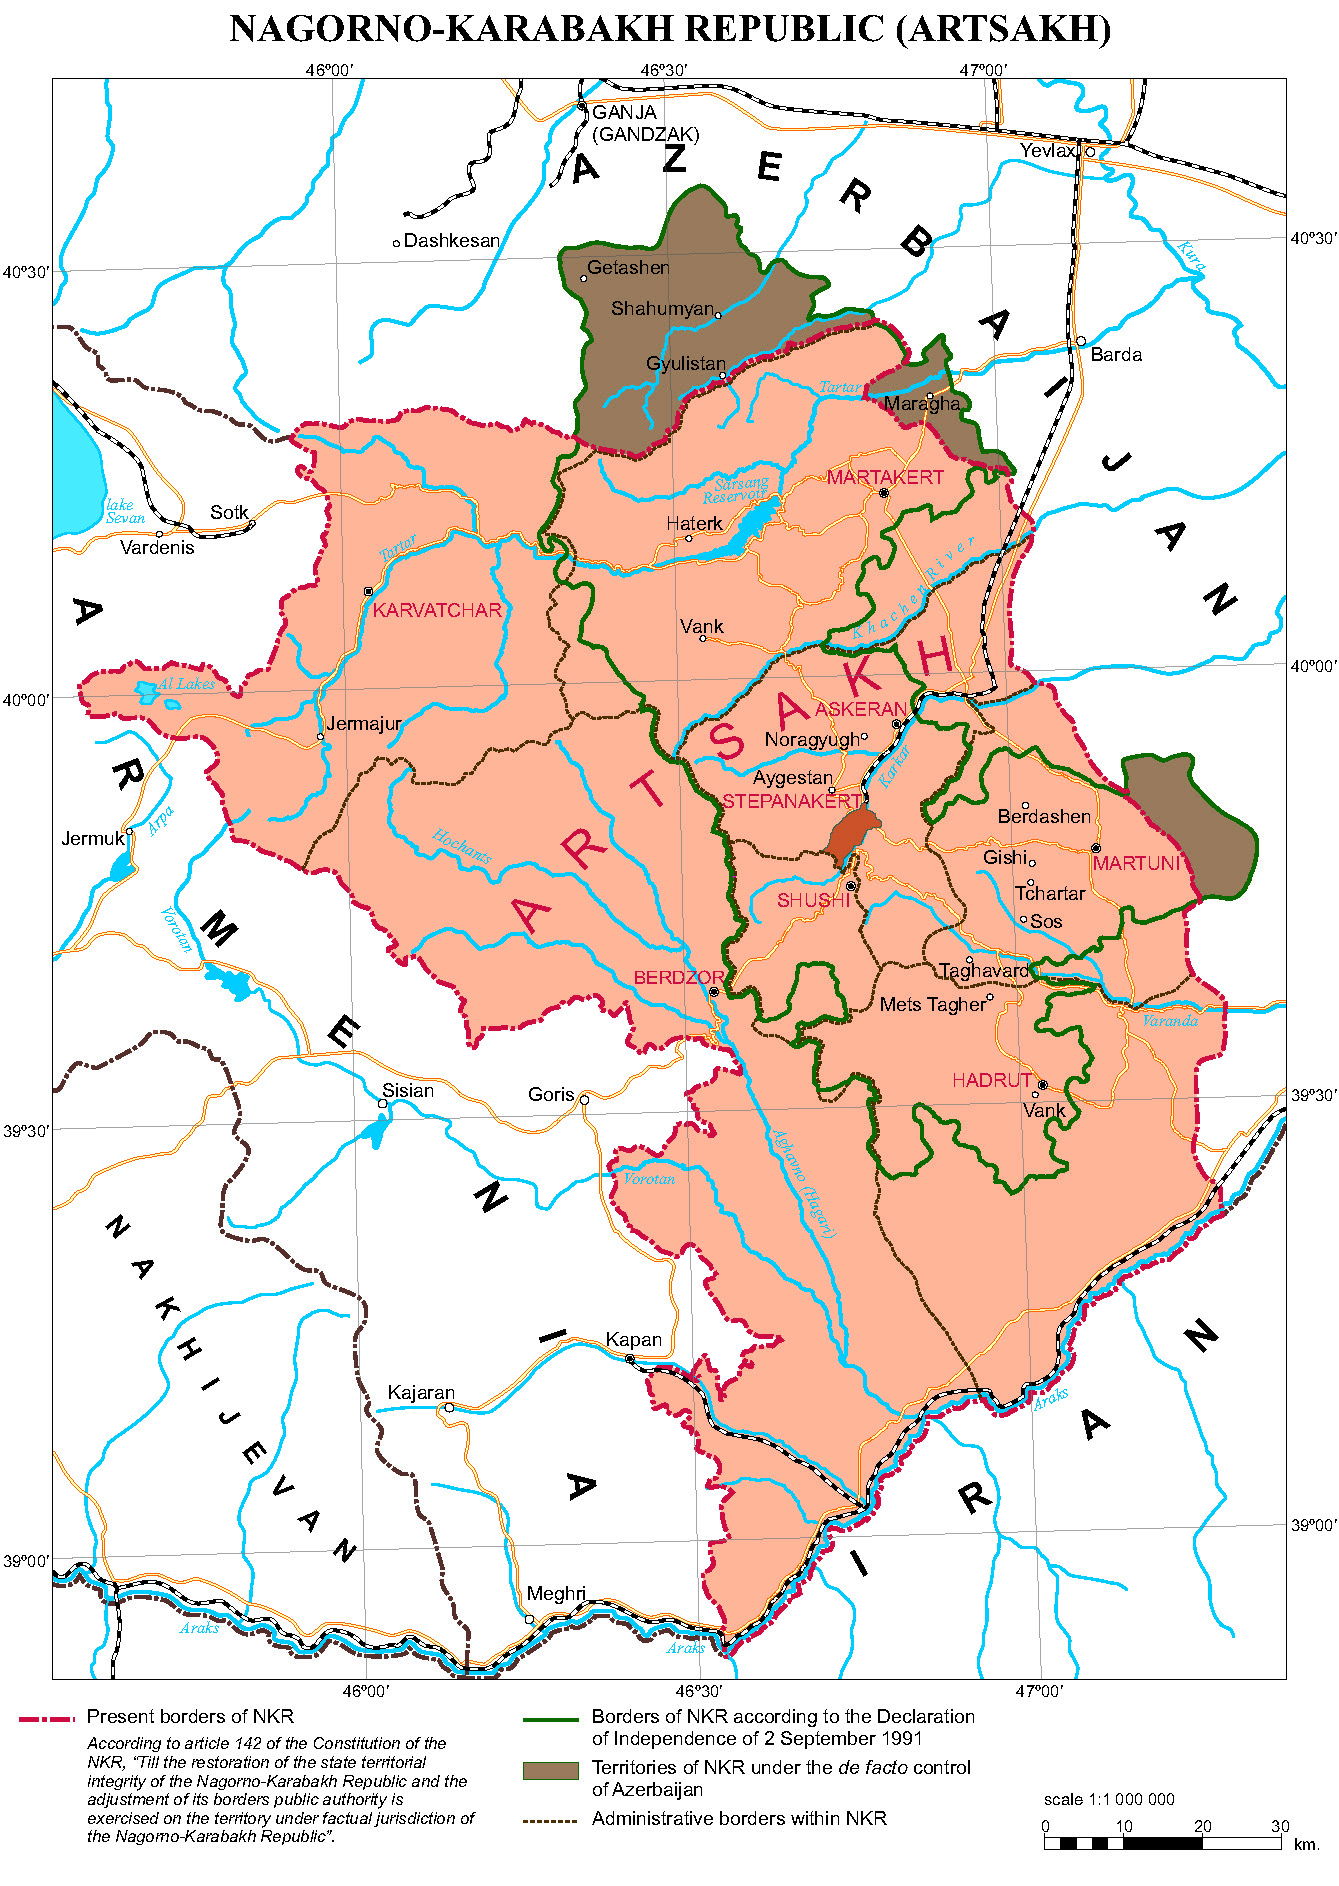 The Contemporary Map of the Nagorno-Karabakh Republic (Artsakh)